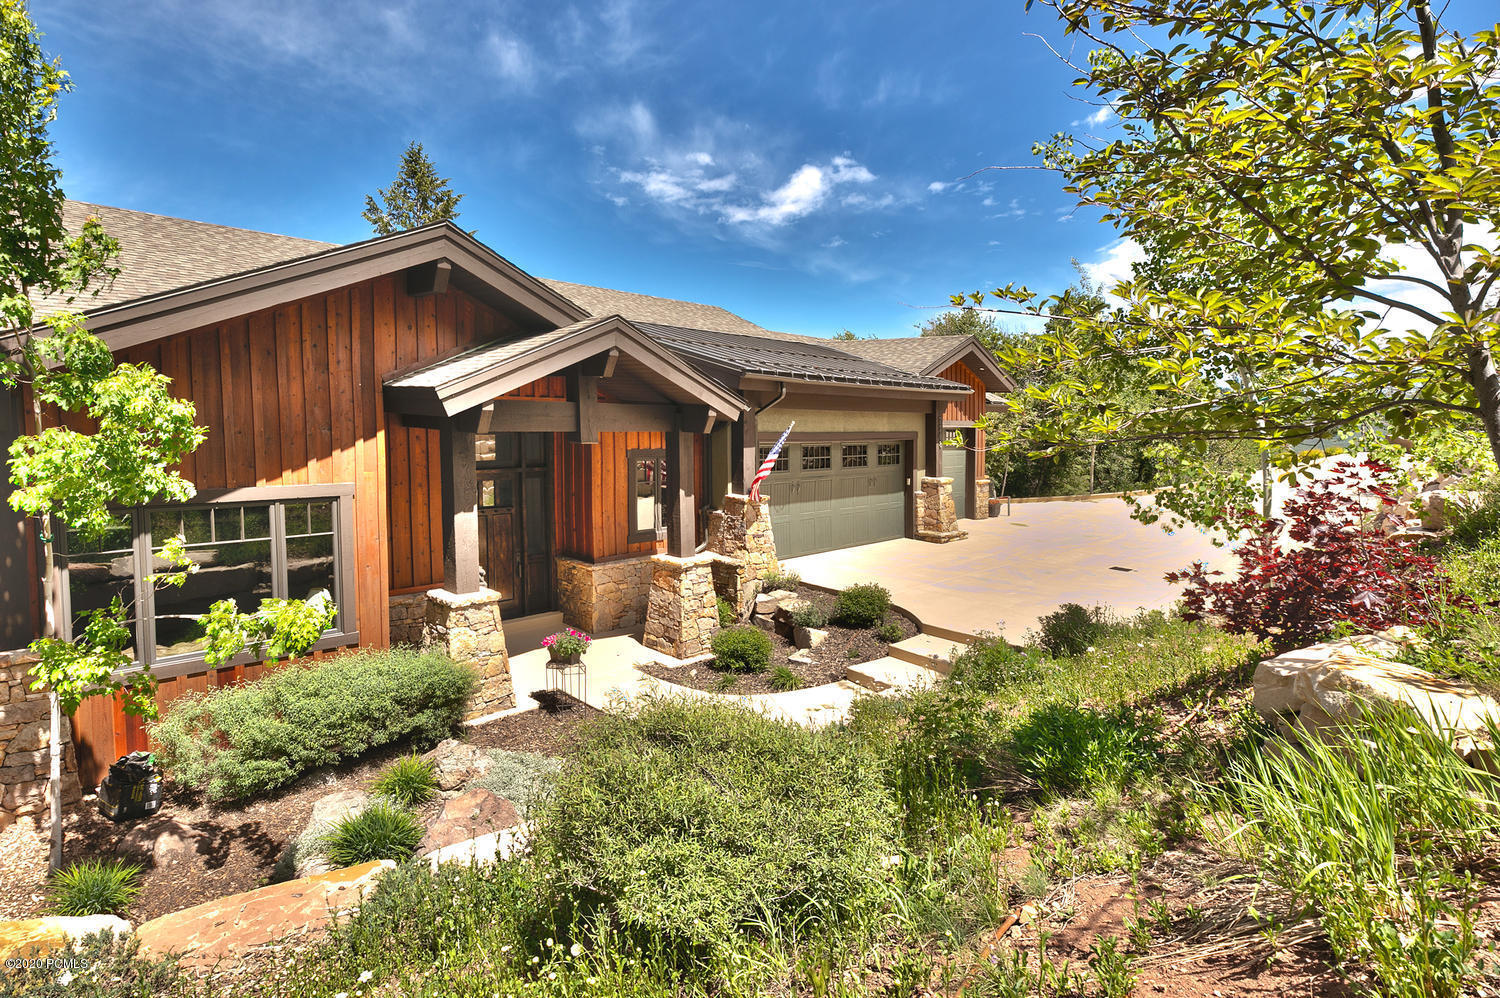 7148 Canyon Drive, Park City, Utah 84098, 4 Bedrooms Bedrooms, ,5 BathroomsBathrooms,Single Family,For Sale,Canyon,20190109112430415765000000